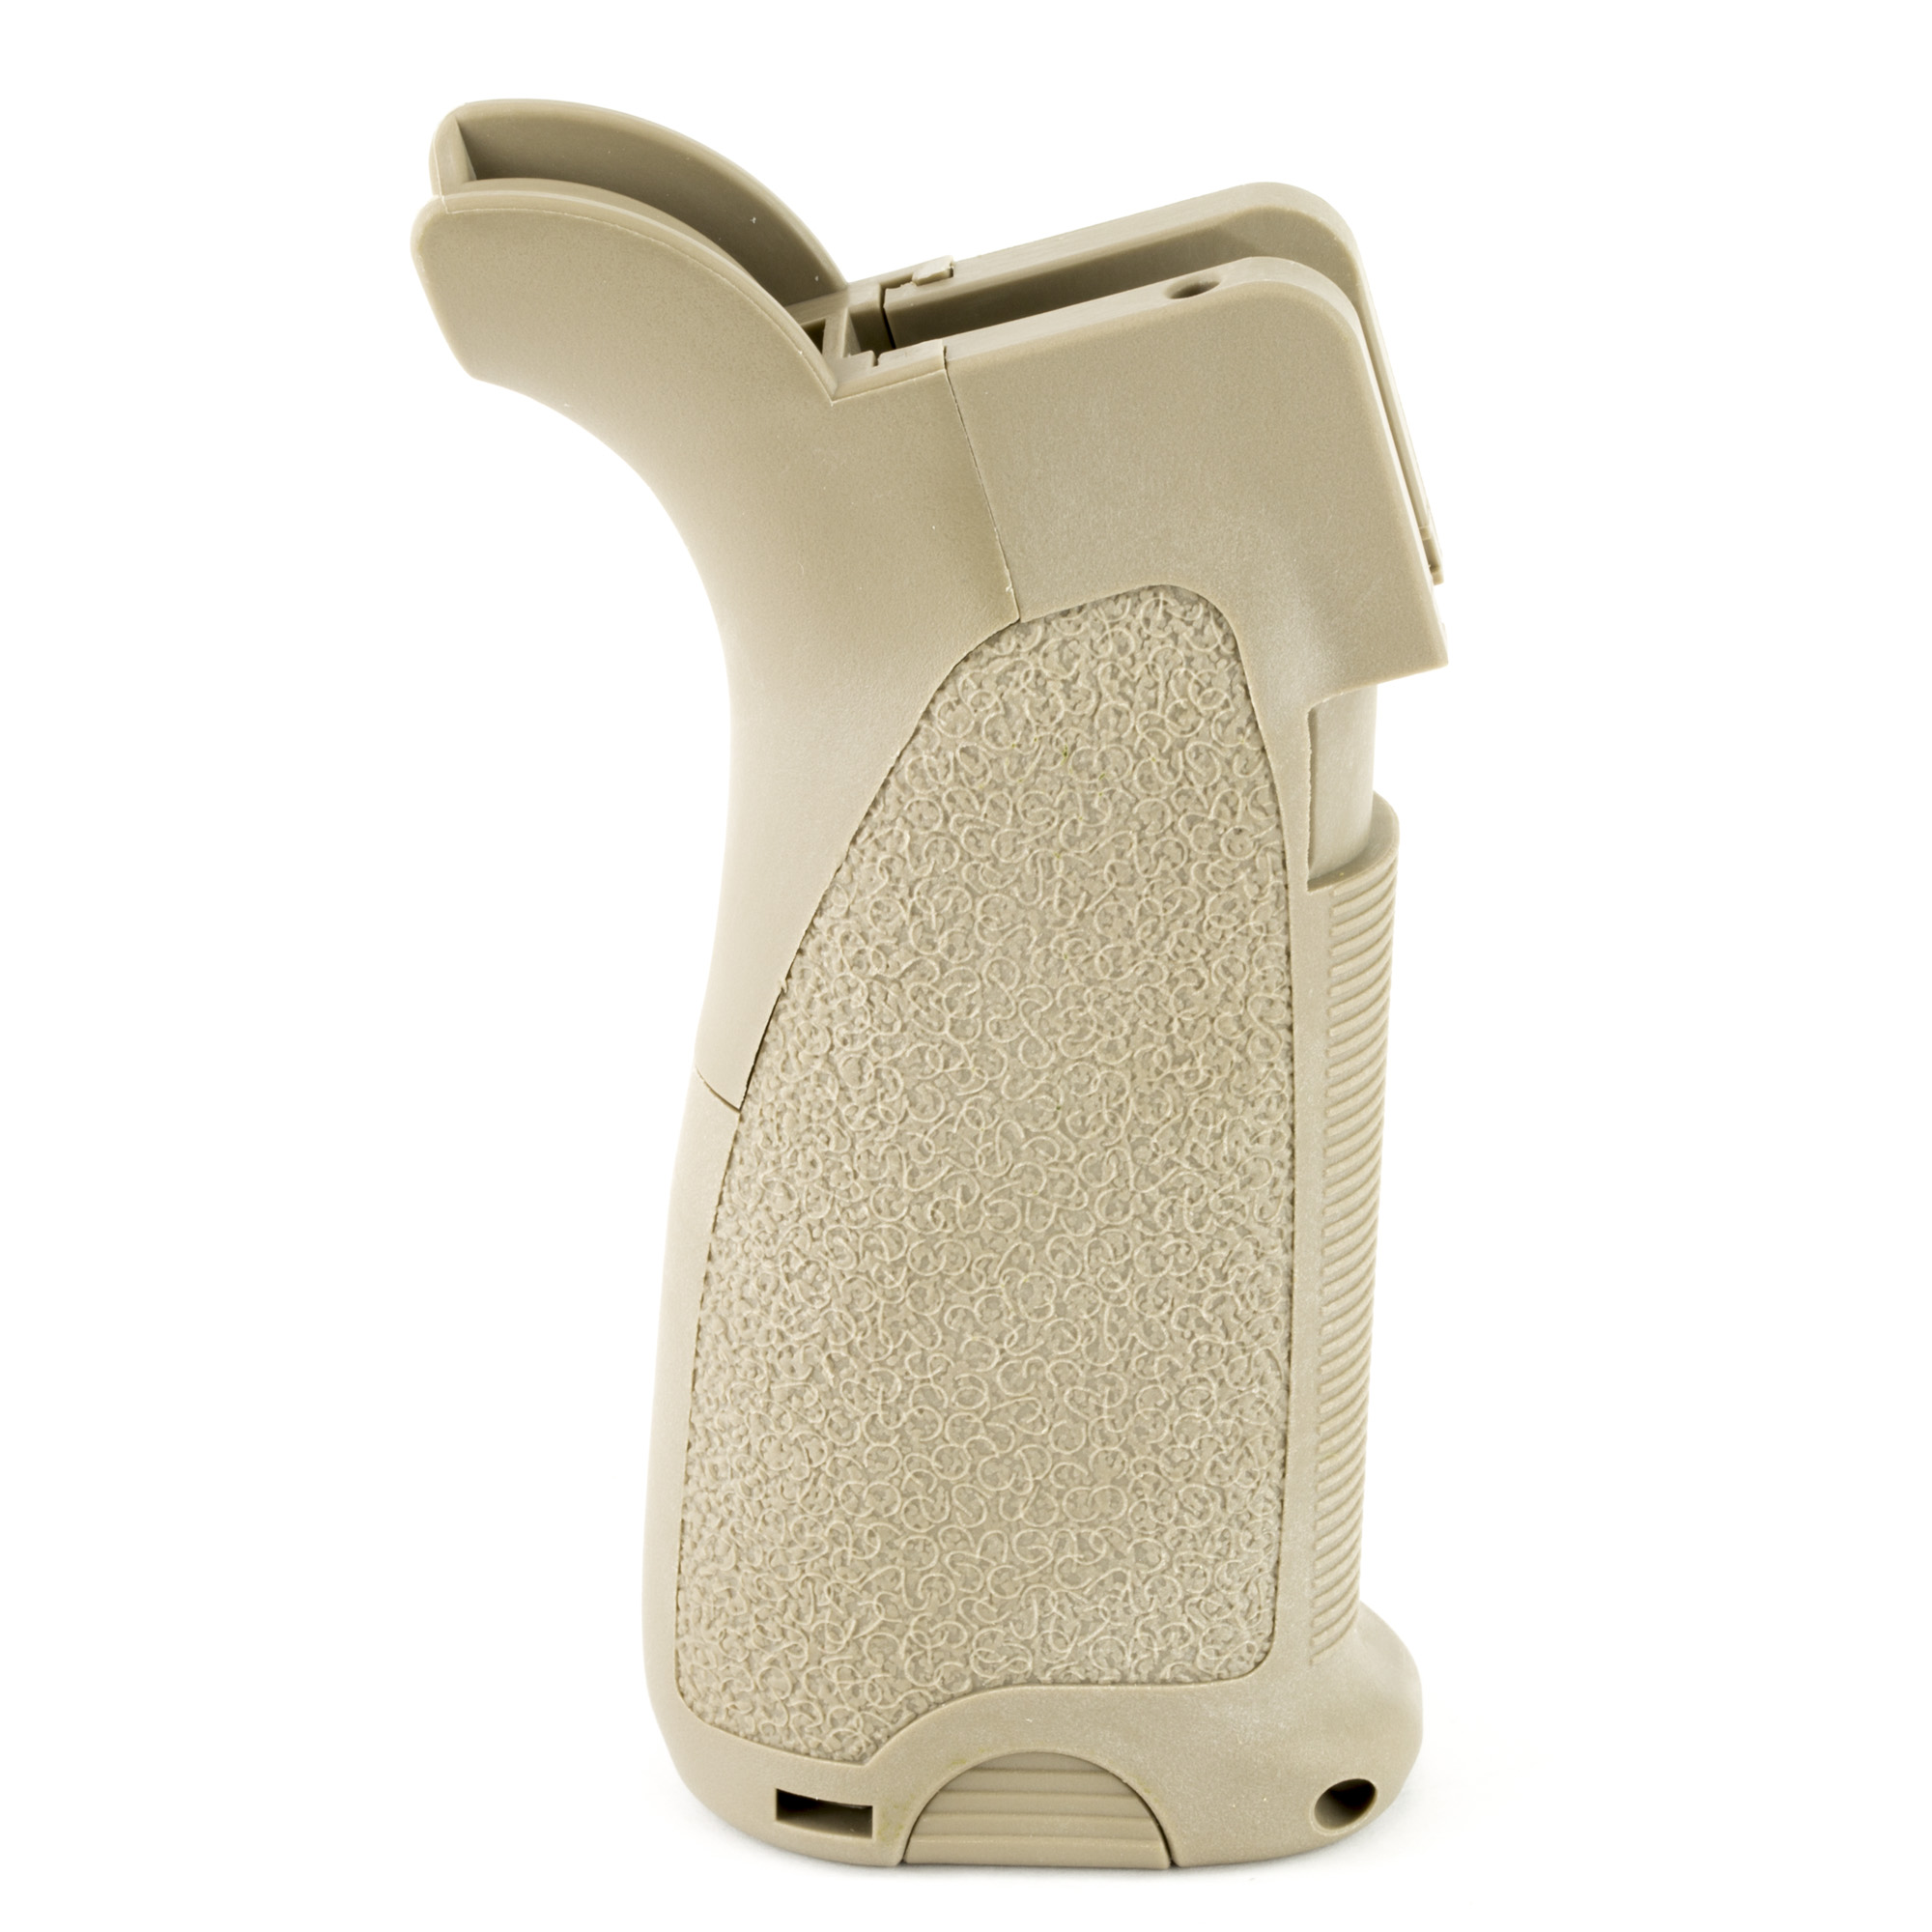 Bravo Company's BCM Gun Fighter's Grip Mod 2 (Modular) grip allows for a reduced angle and improved ergonomics when shooting in the modern gun fighting stances. The Mod 2 is up to a quarter of an inch wider than the BCMGUNFIGHTER Mod 0 and Mod 1 grips. This is a new AR grip refined for the modern warfighter and optimized for modern weapon manipulation techniques. The reduced grip angle keeps the wrist in line with the trigger for improved ergonomics and trigger control. It has interchangeable backstraps and inserts and has a hinged trap door with an interior storage compartment and water resistant rubber gasket. Made in the U.S.A. and manufactured from high quality impact resistant polymers.